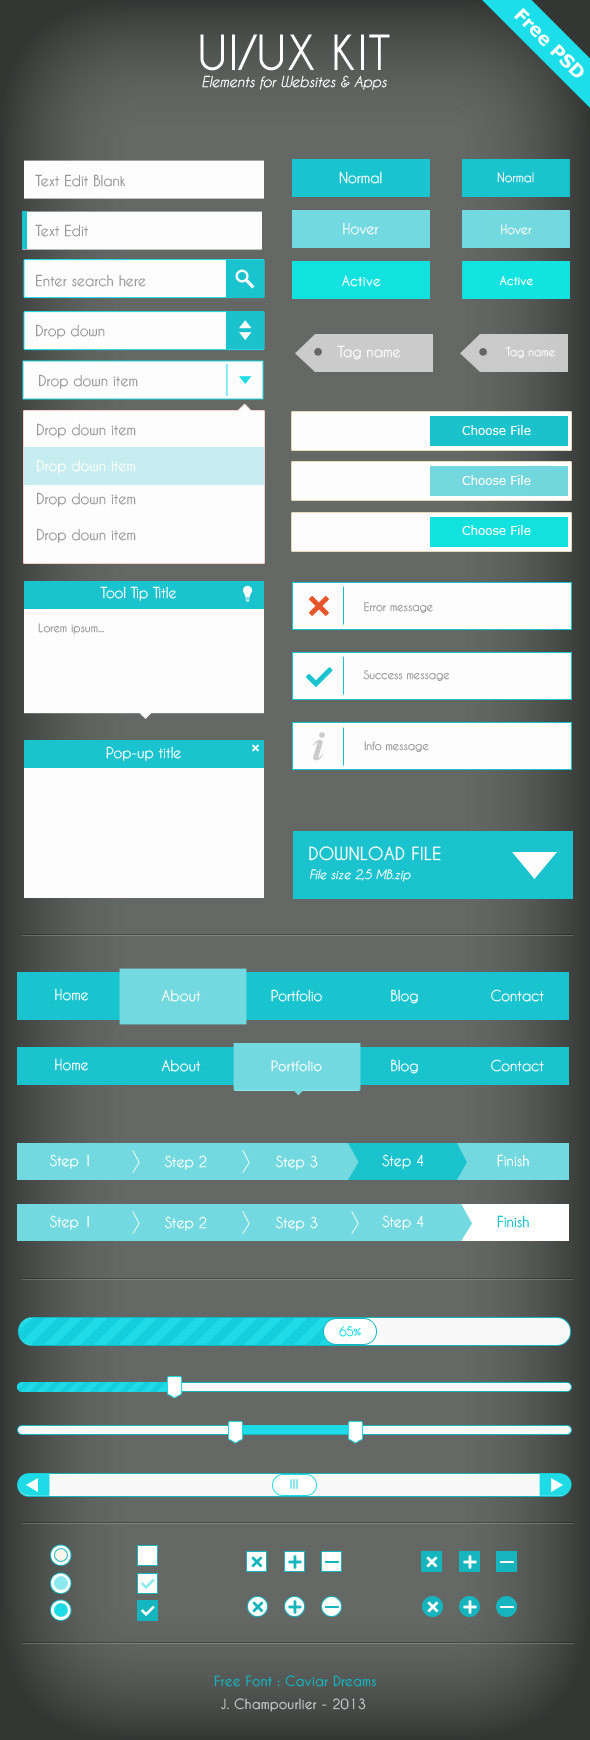 UI UX Kit Elements For Website & APP (PSD)